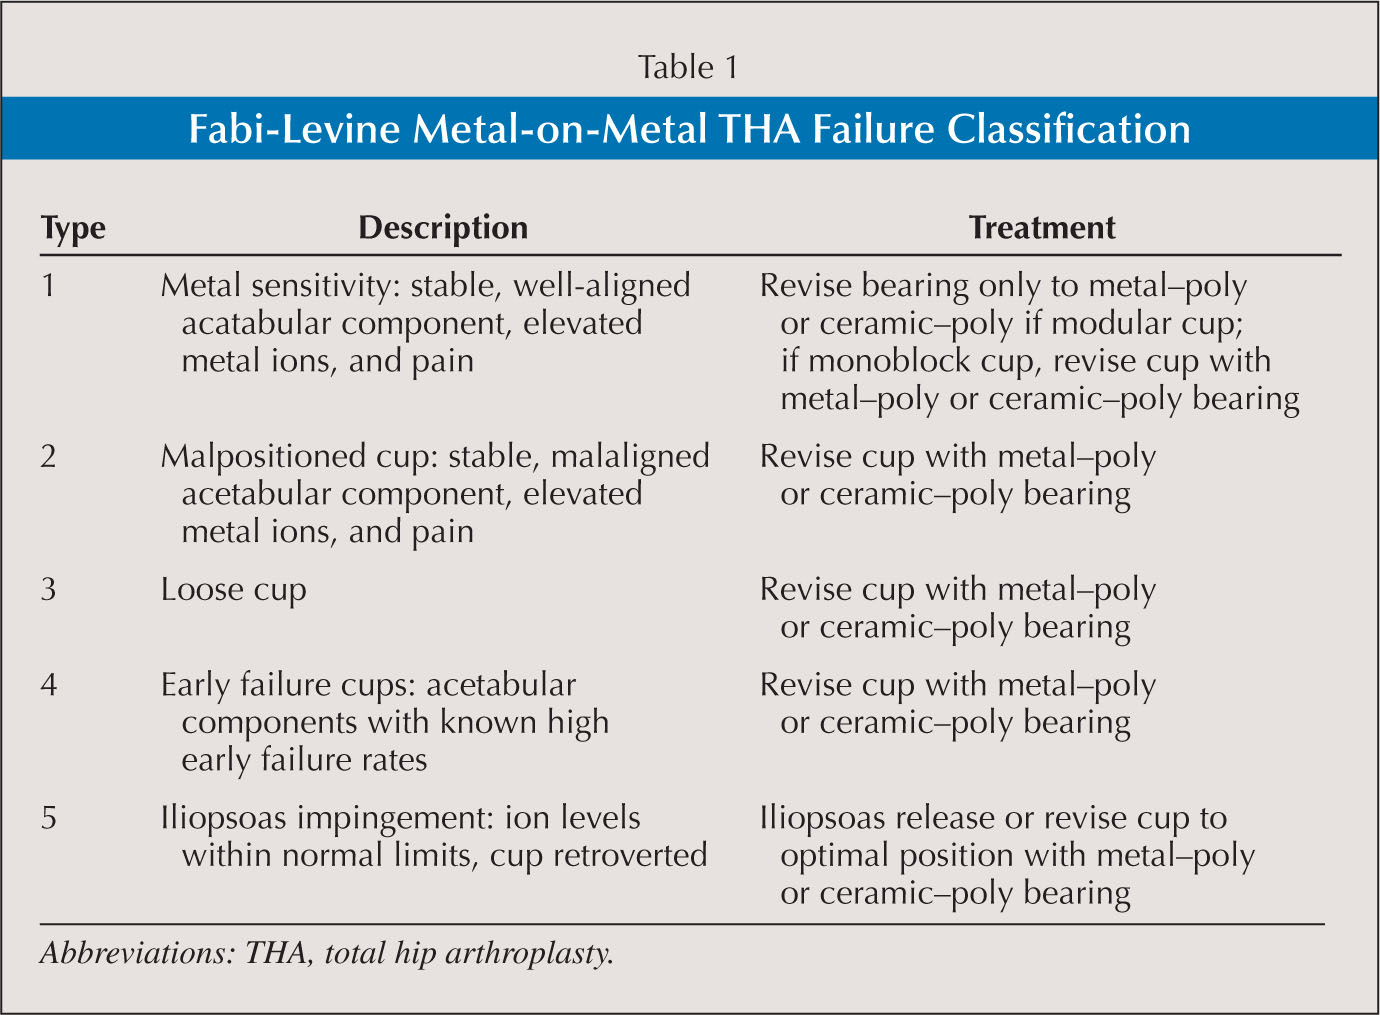 Fabi-Levine Metal-on-Metal THA Failure Classification